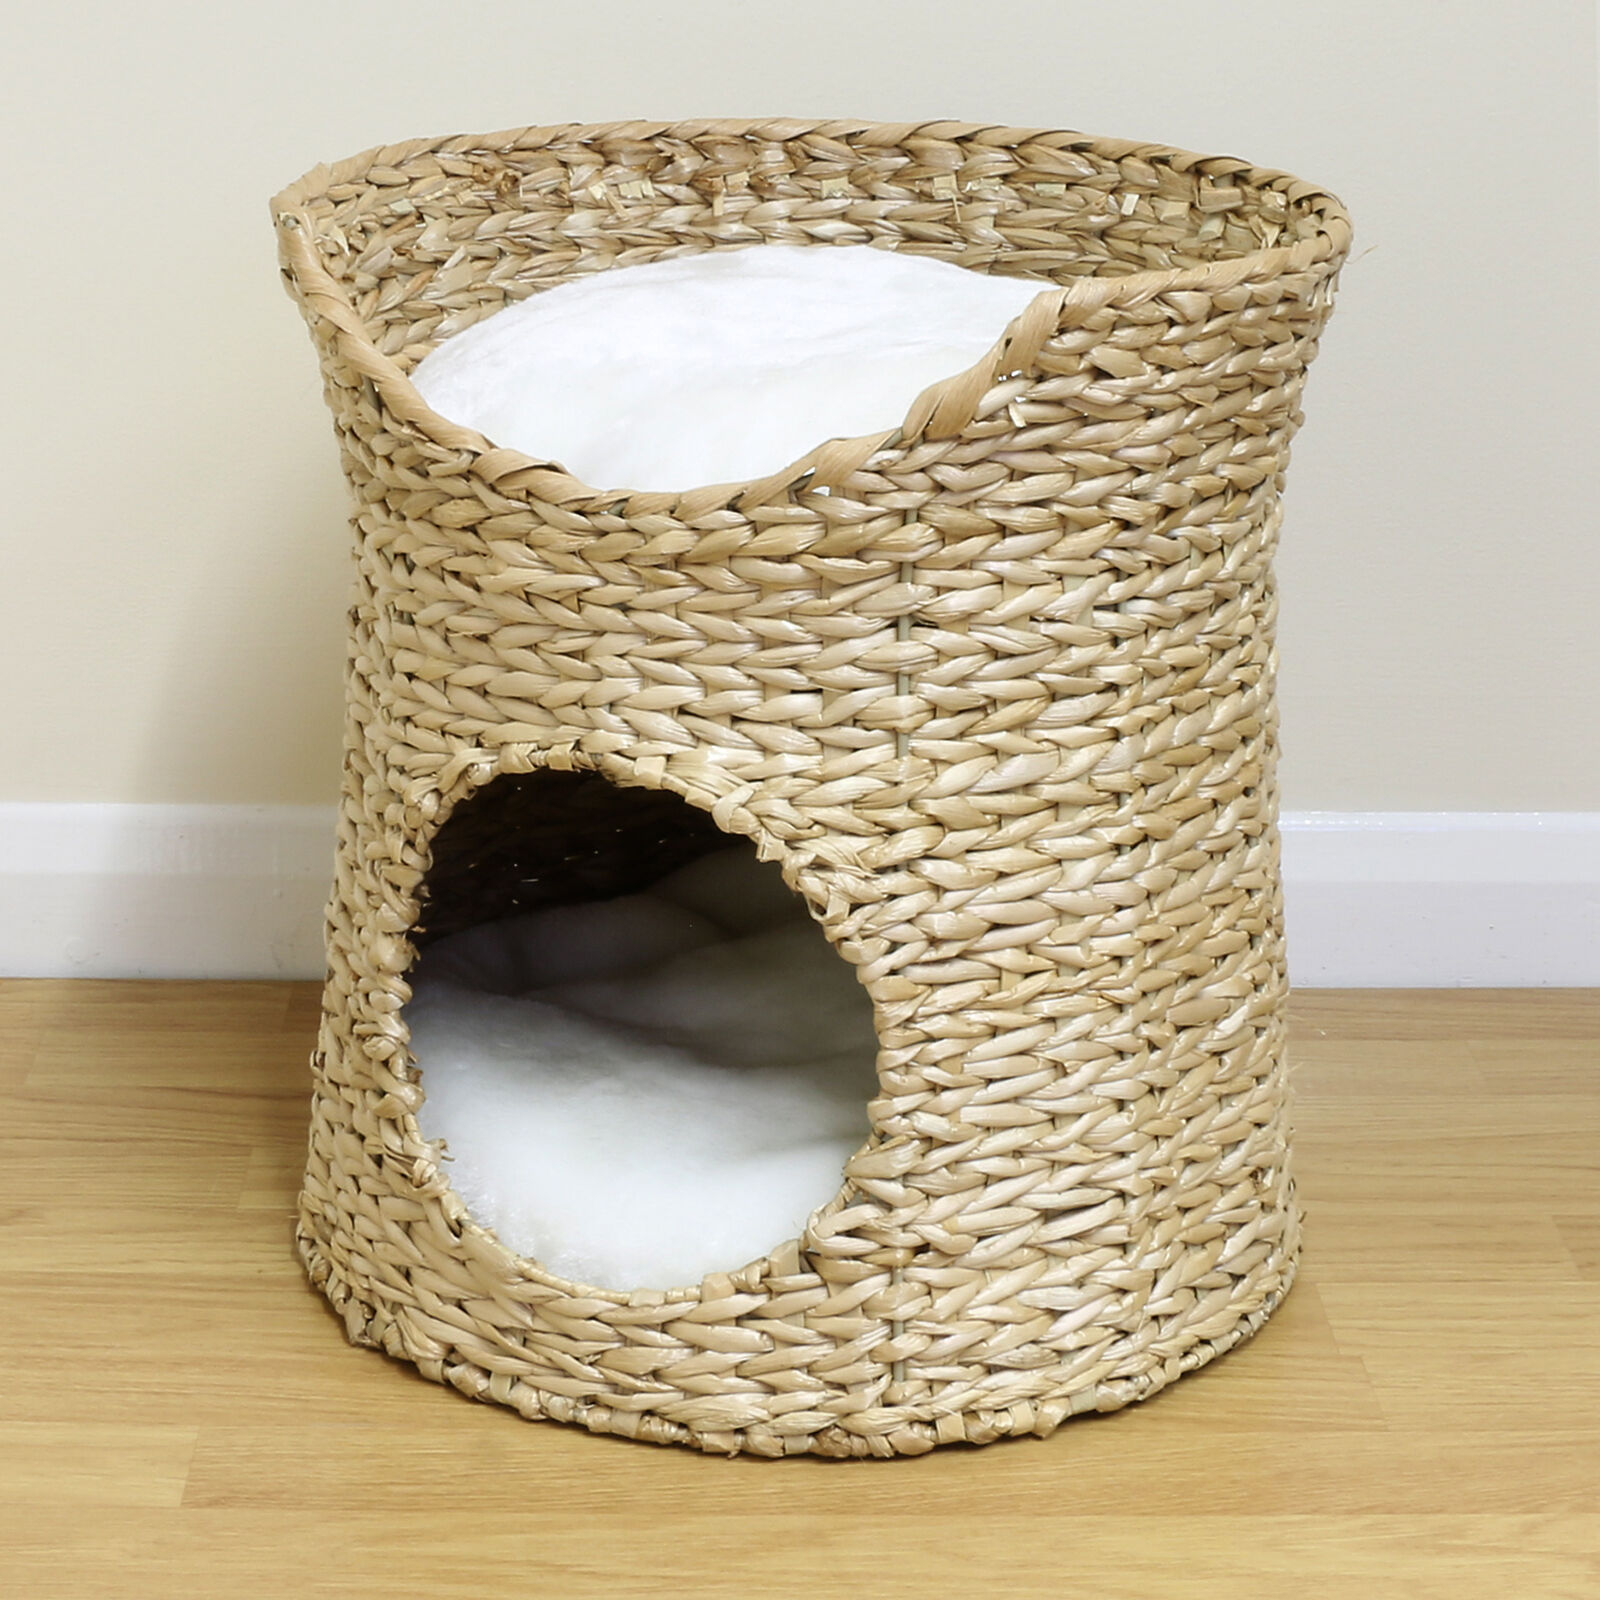 How To Weave A Cat Basket : Double cat kitten puppy bed natural woven seagrass twin